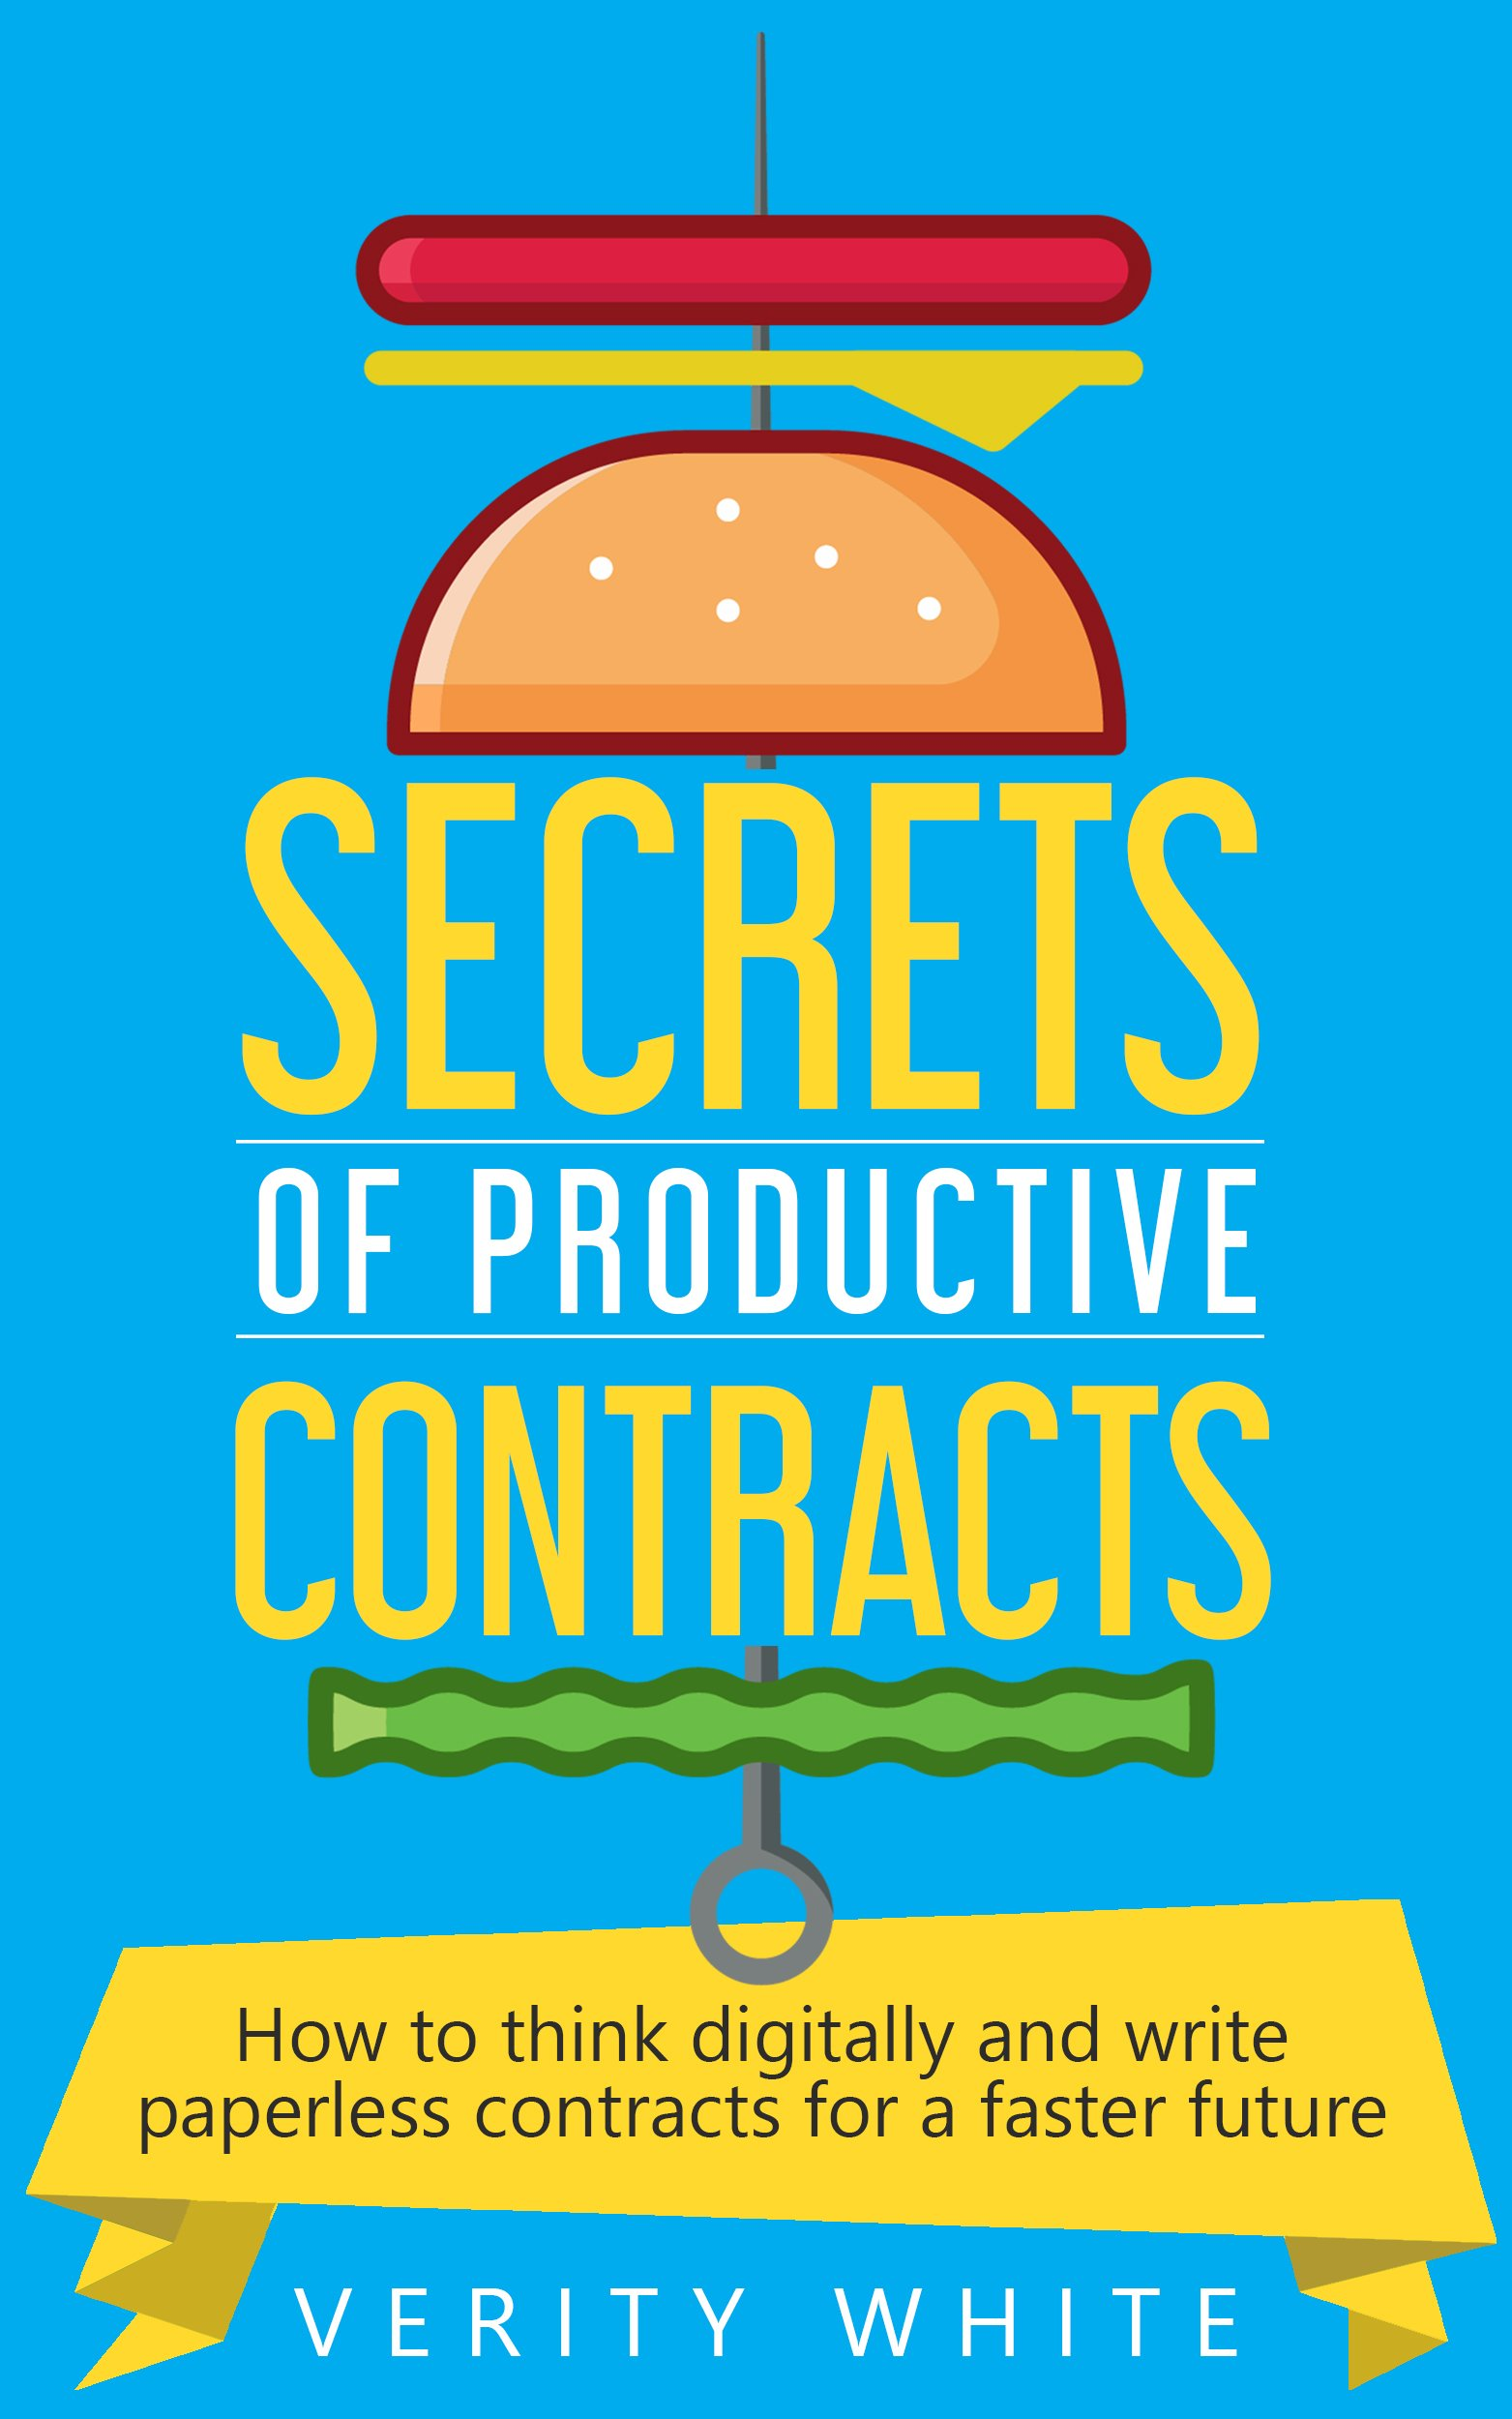 Secrets of Productive Contracts: How to think digitally and write paperless contracts for a faster future